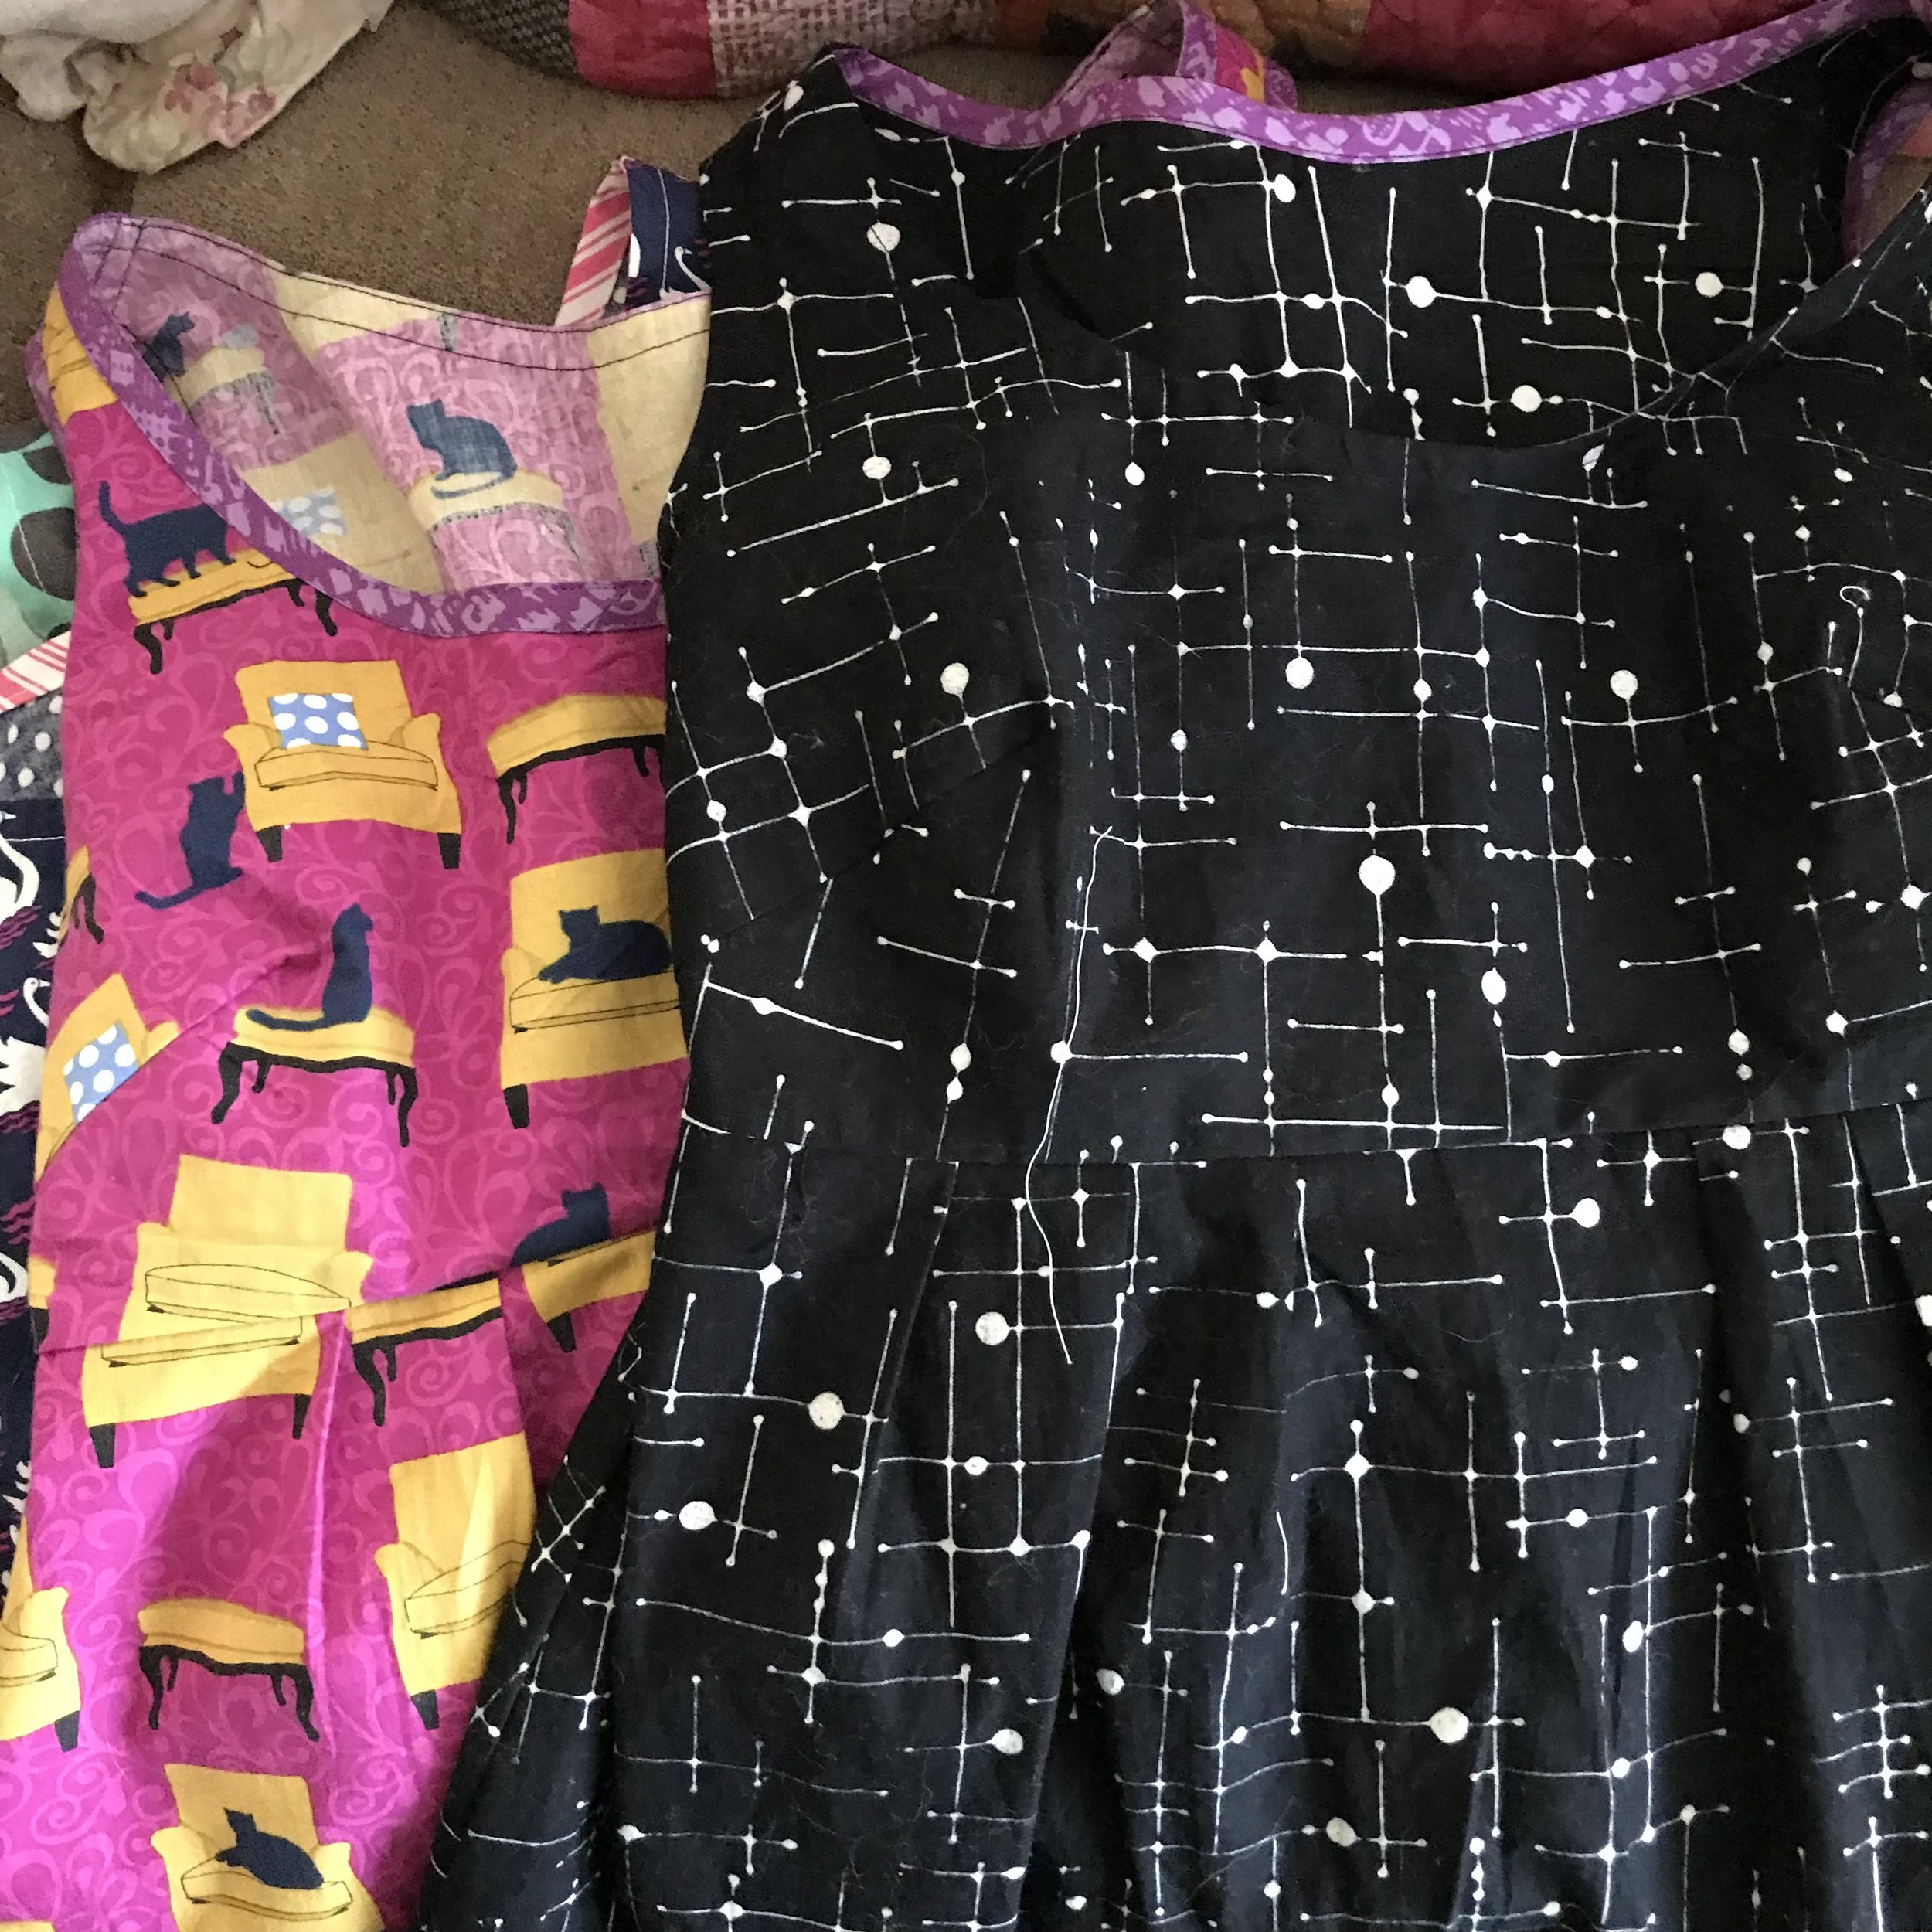 Handmade dresses are even more awesome with contrasting bias tape, amirite?   -